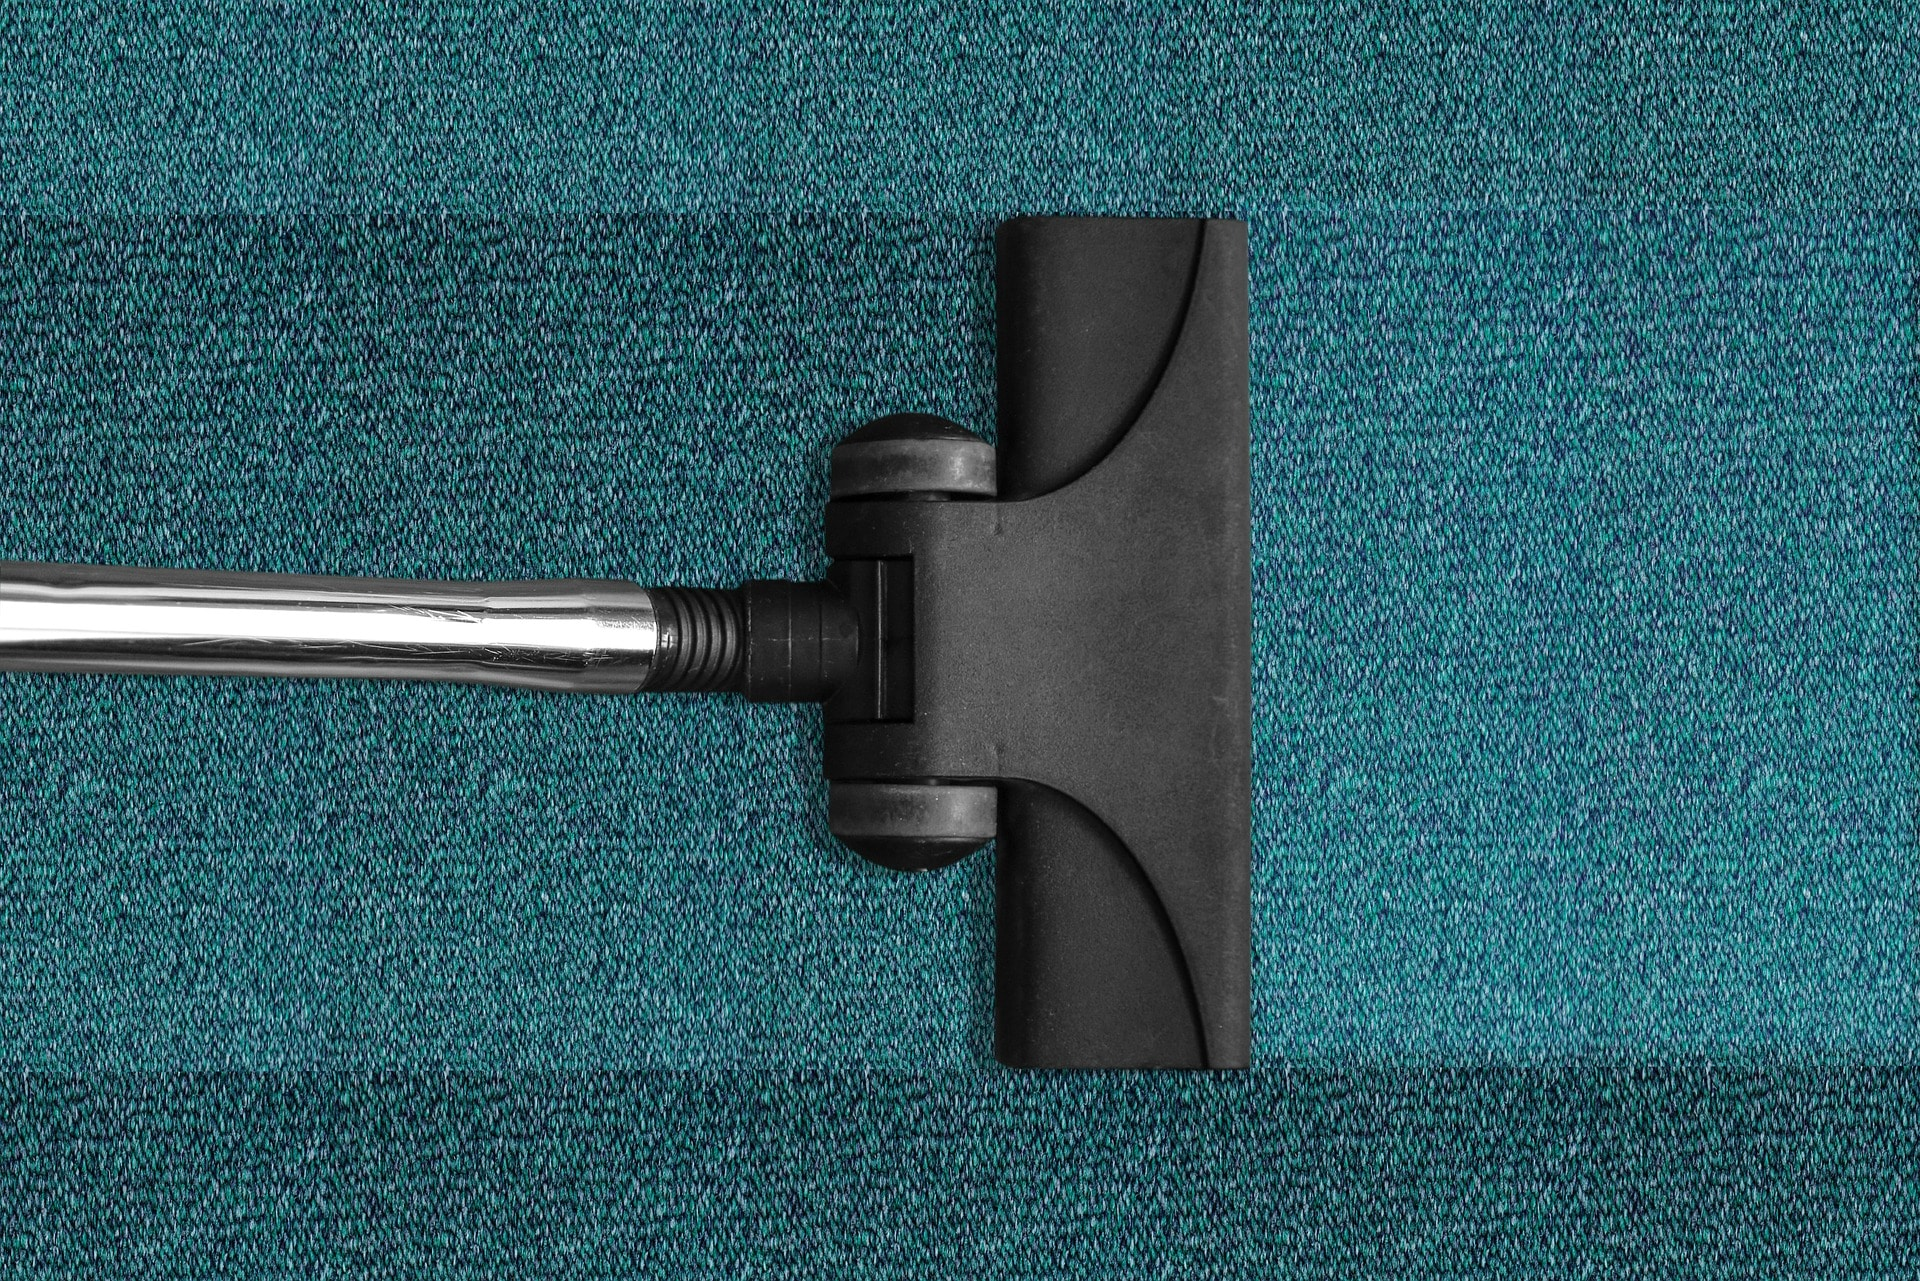 choose a professional carpet cleaning